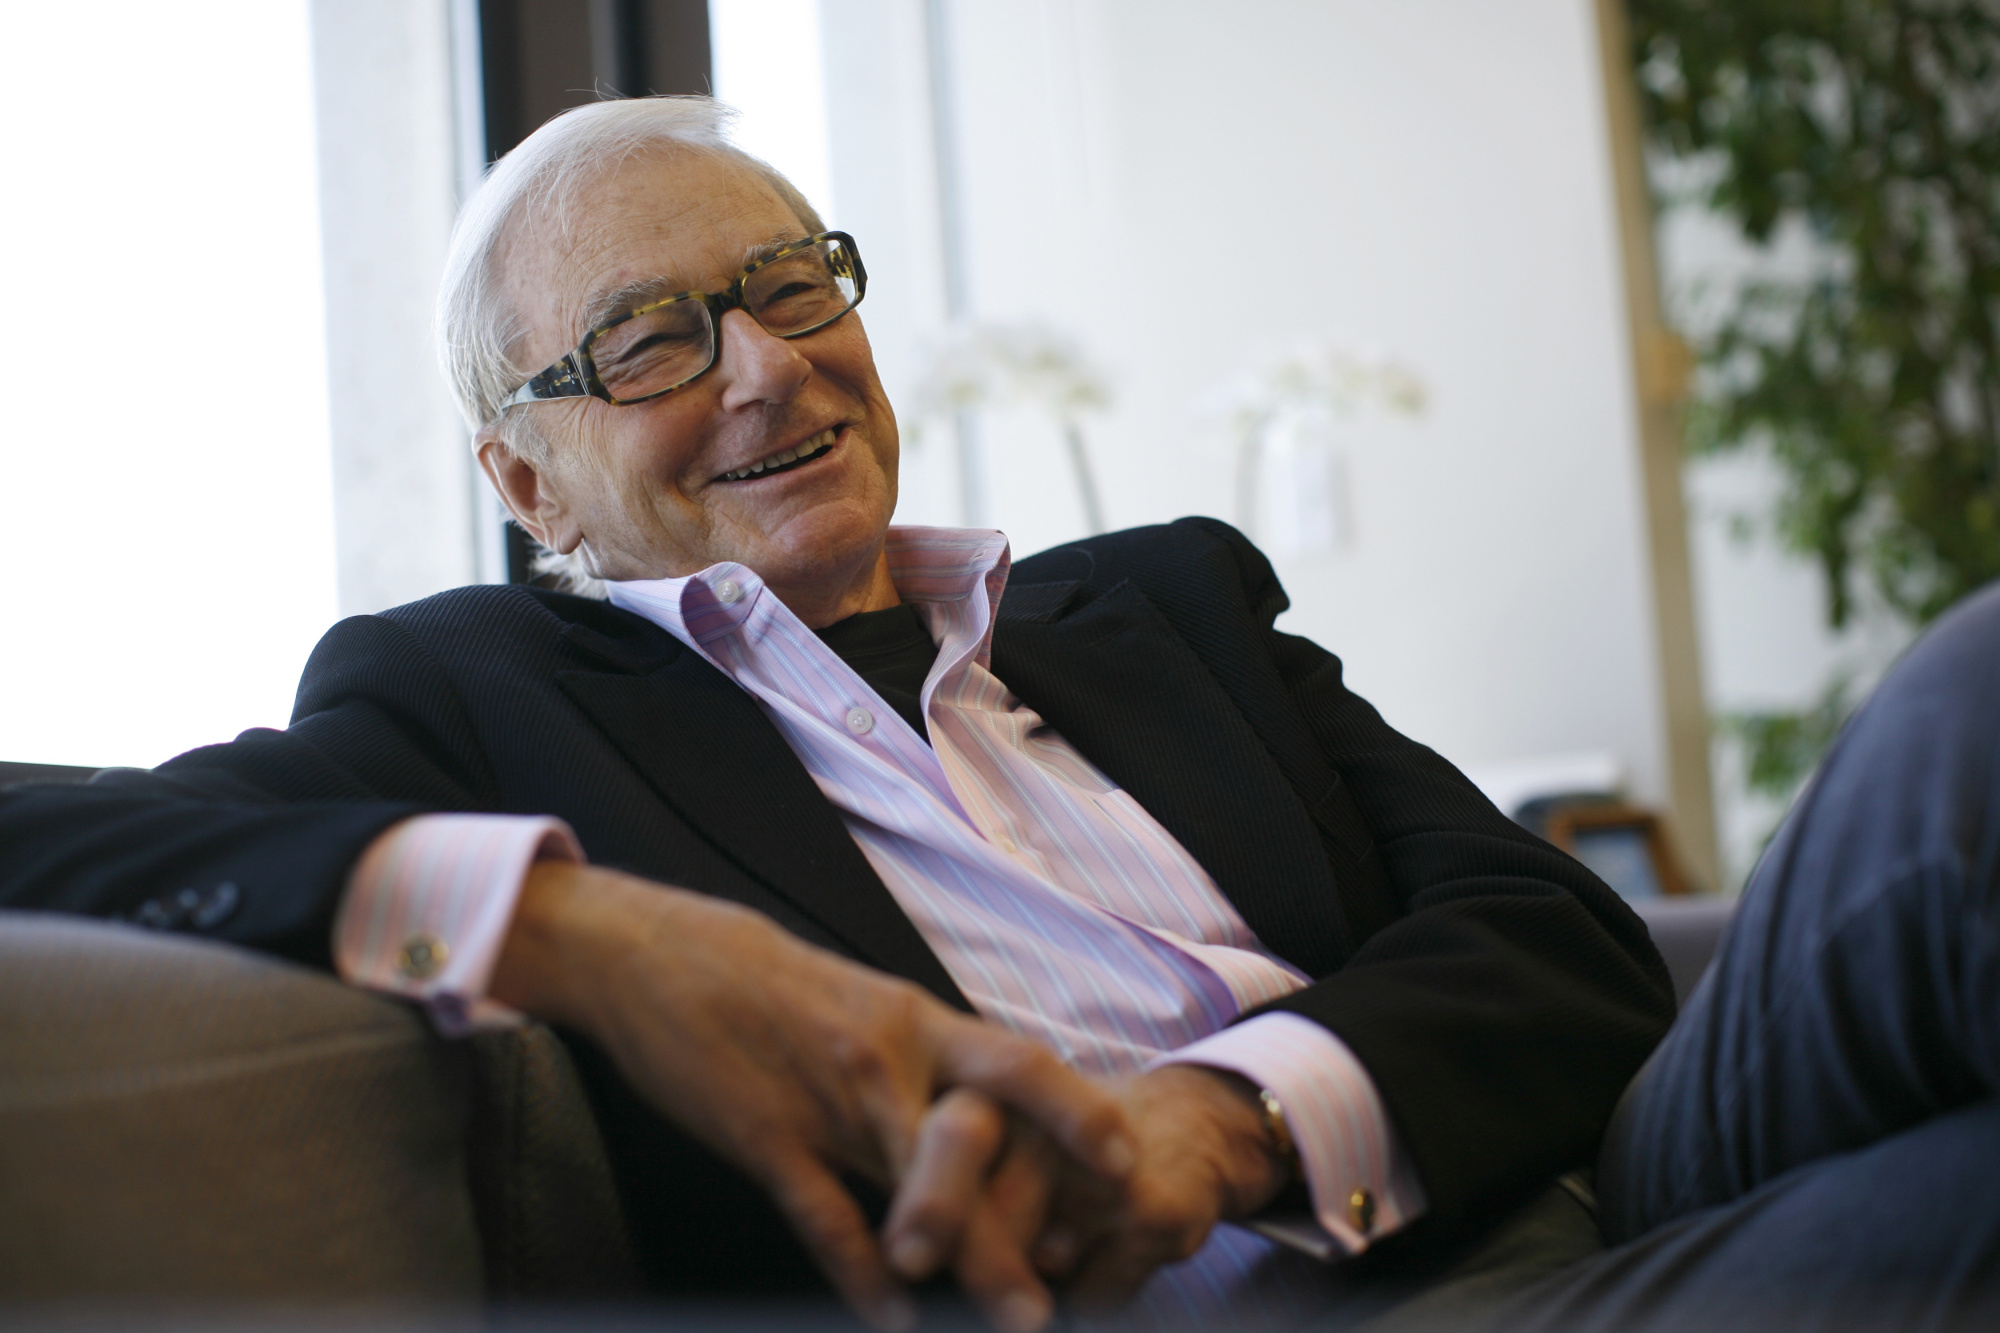 Venture capitalist Tom Perkins is interviewed in his office in San Francisco, California September 12, 2011. Perkins is a co-founder of venture capital firm Kleiner Perkins and the backer of companies ranging from Genentech to Google.